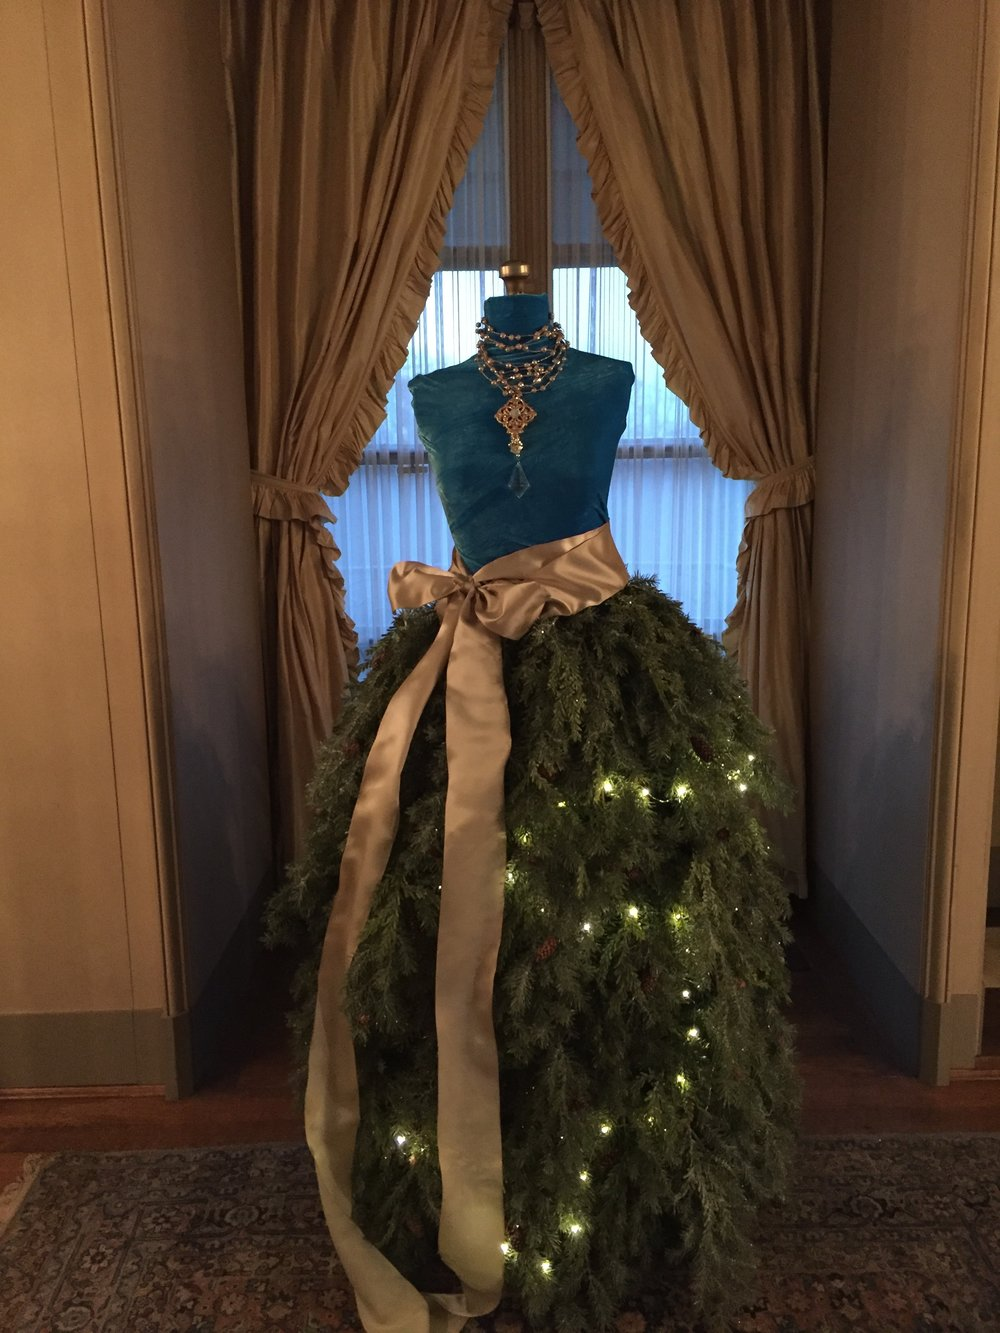 Our Christmas Dress built upon Mrs. Vanderbilt's dress form for the Vanderbilt Museum Twilight Christmas Tour.